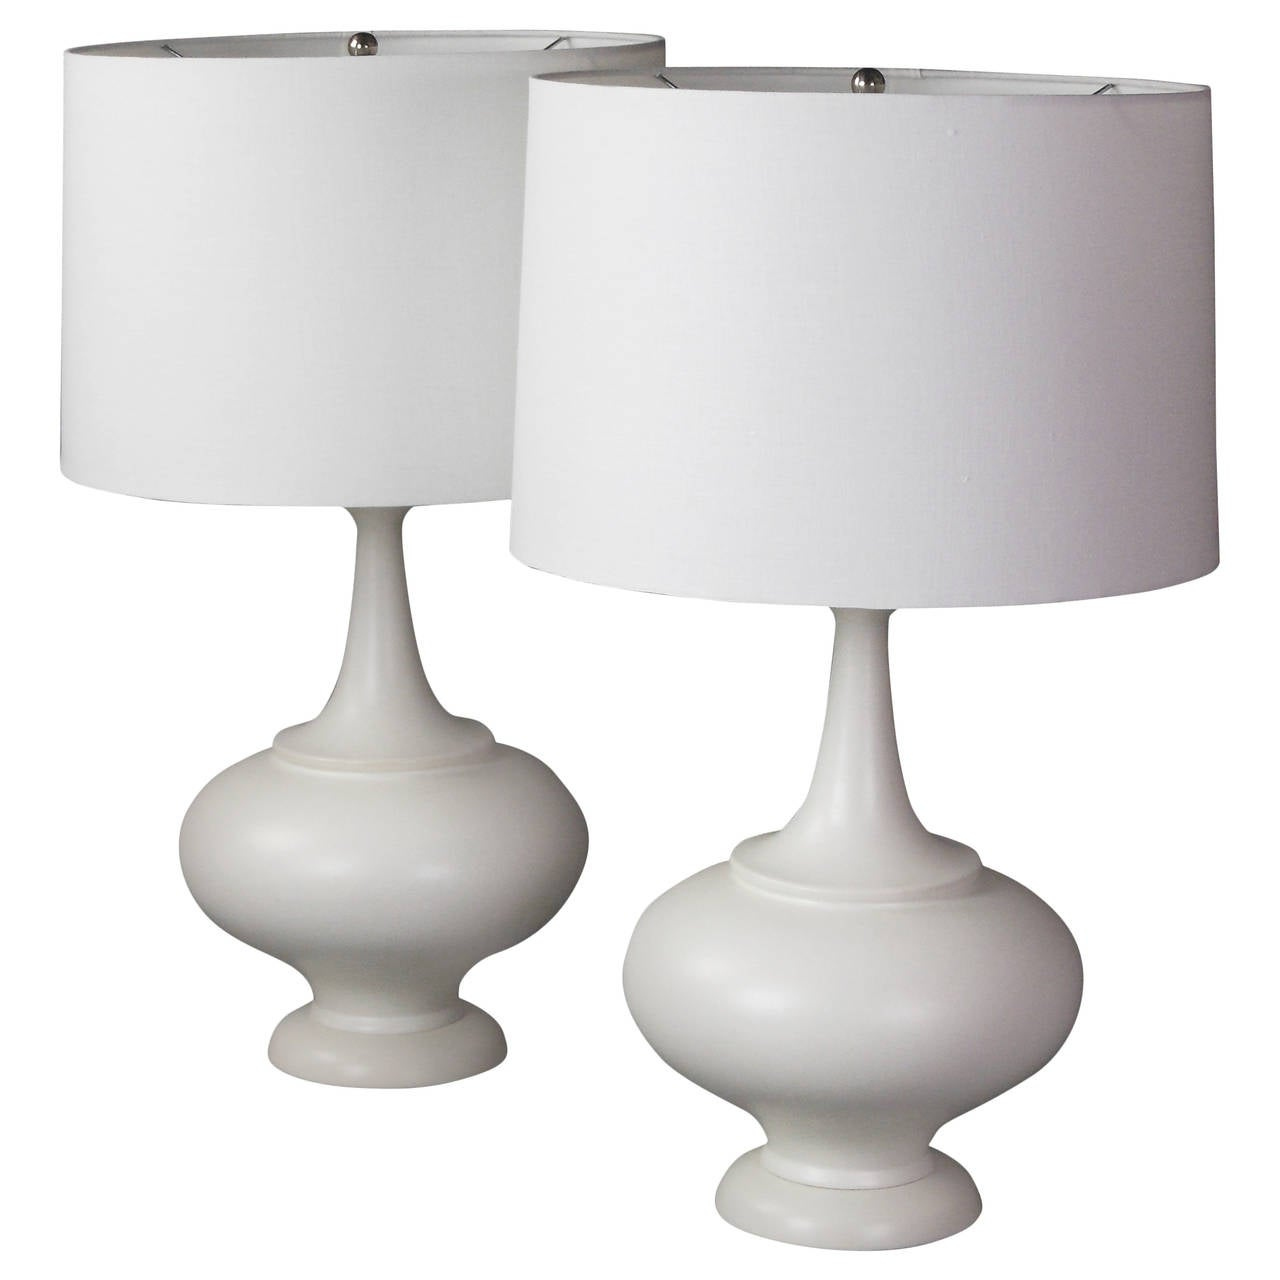 Large Lamps For Sale Pair Of Midcentury Large White Ceramic Lamps For Sale At